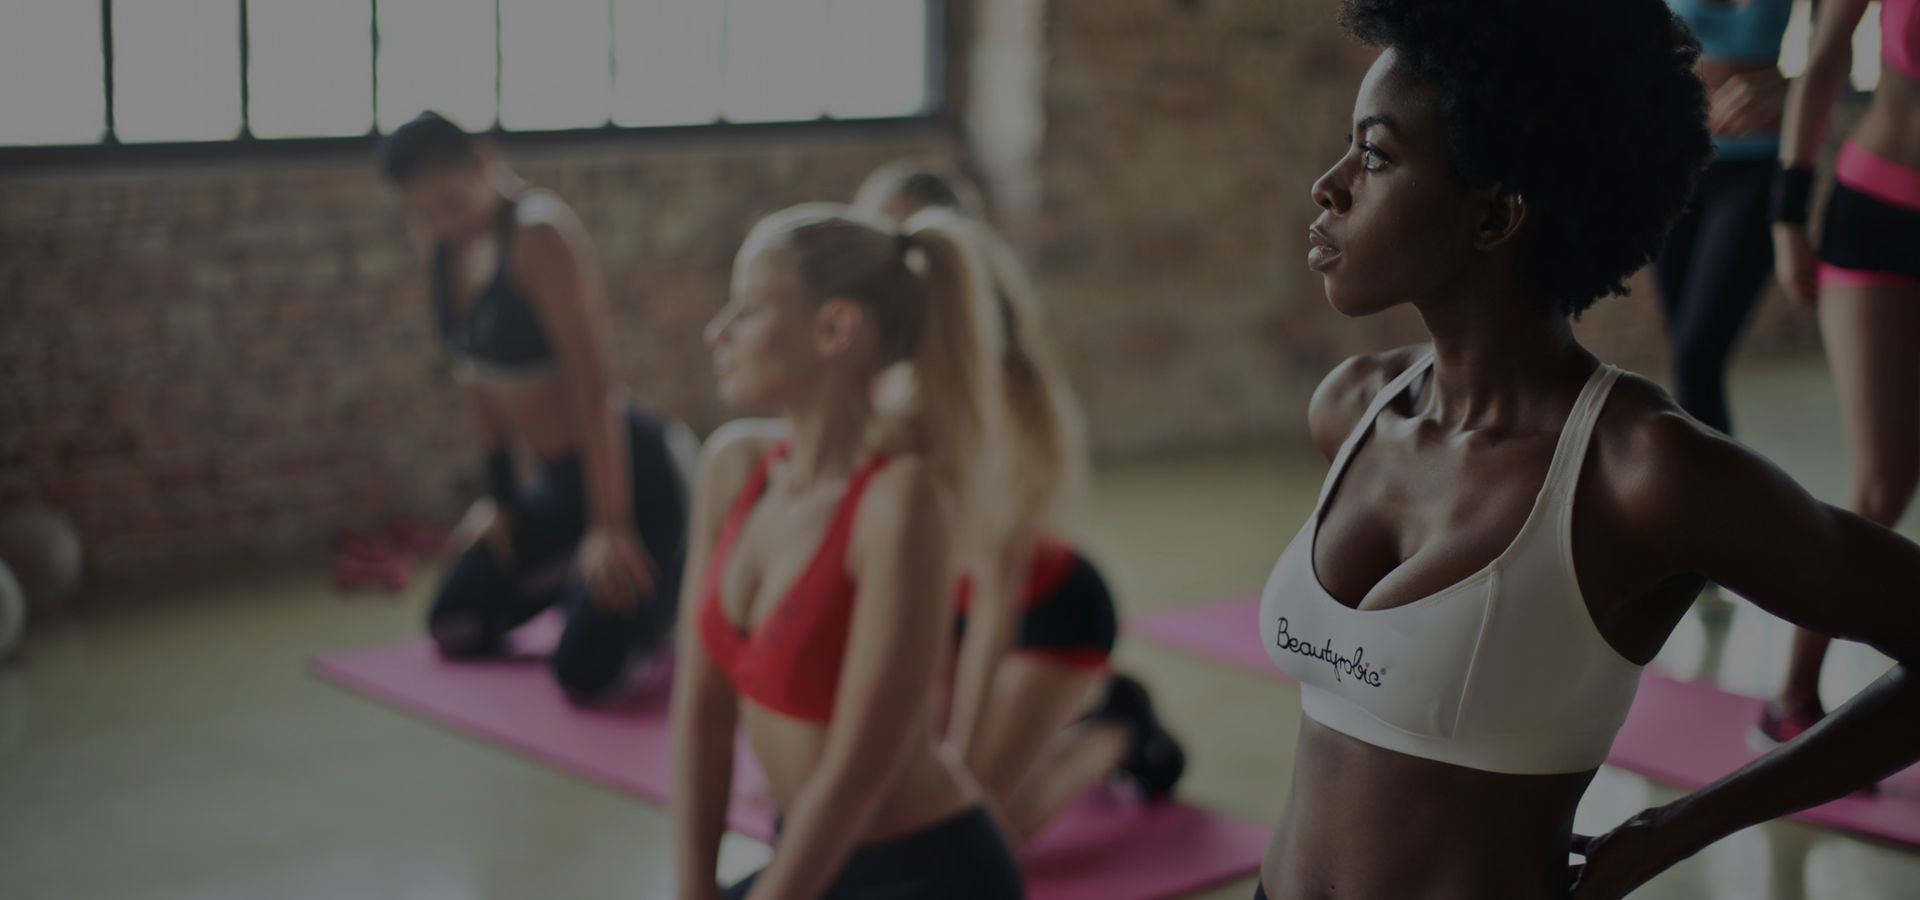 The complete mind, body and wellness experience